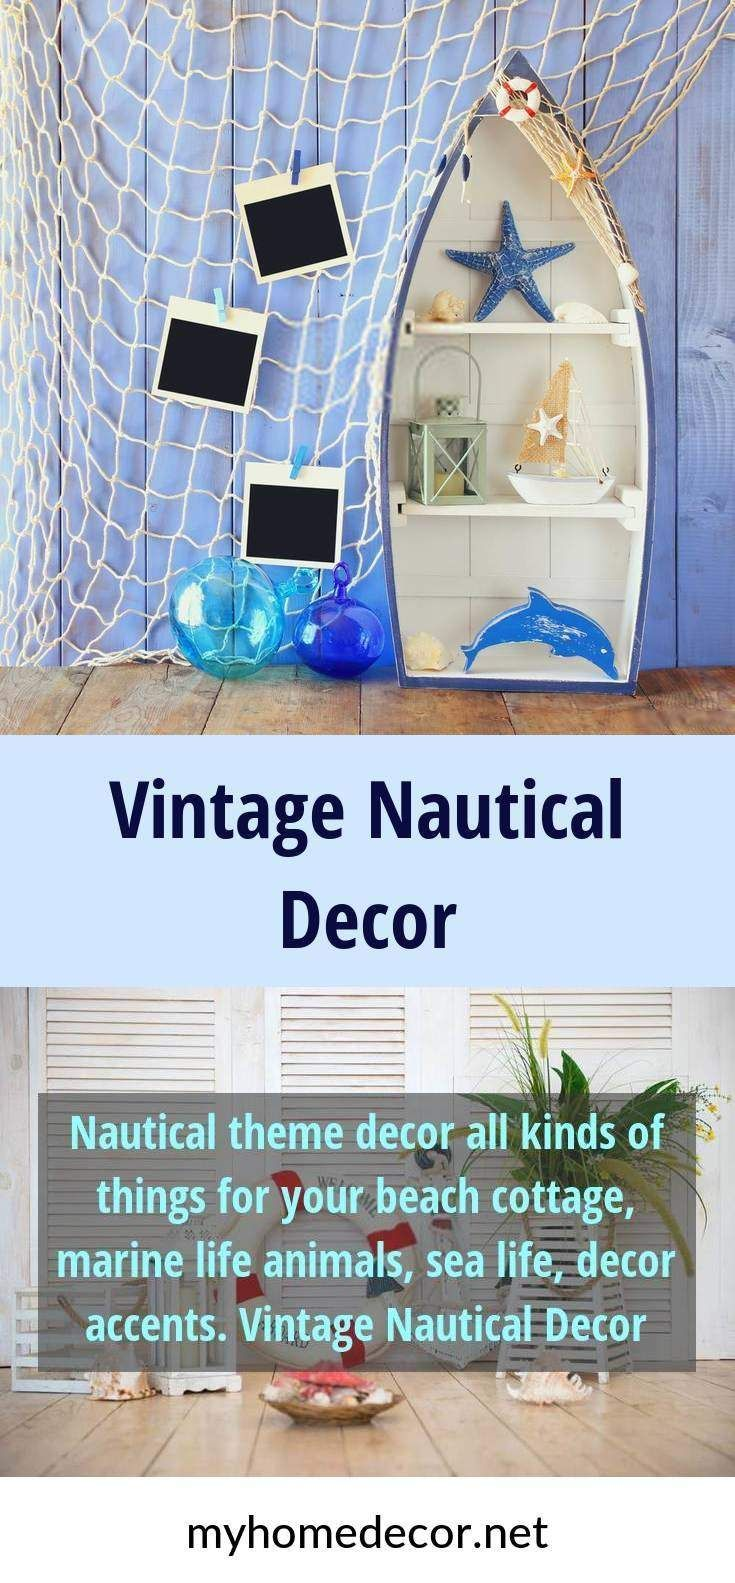 Nautical Theme Decor All Kinds Of Things For Your Beach Cottage